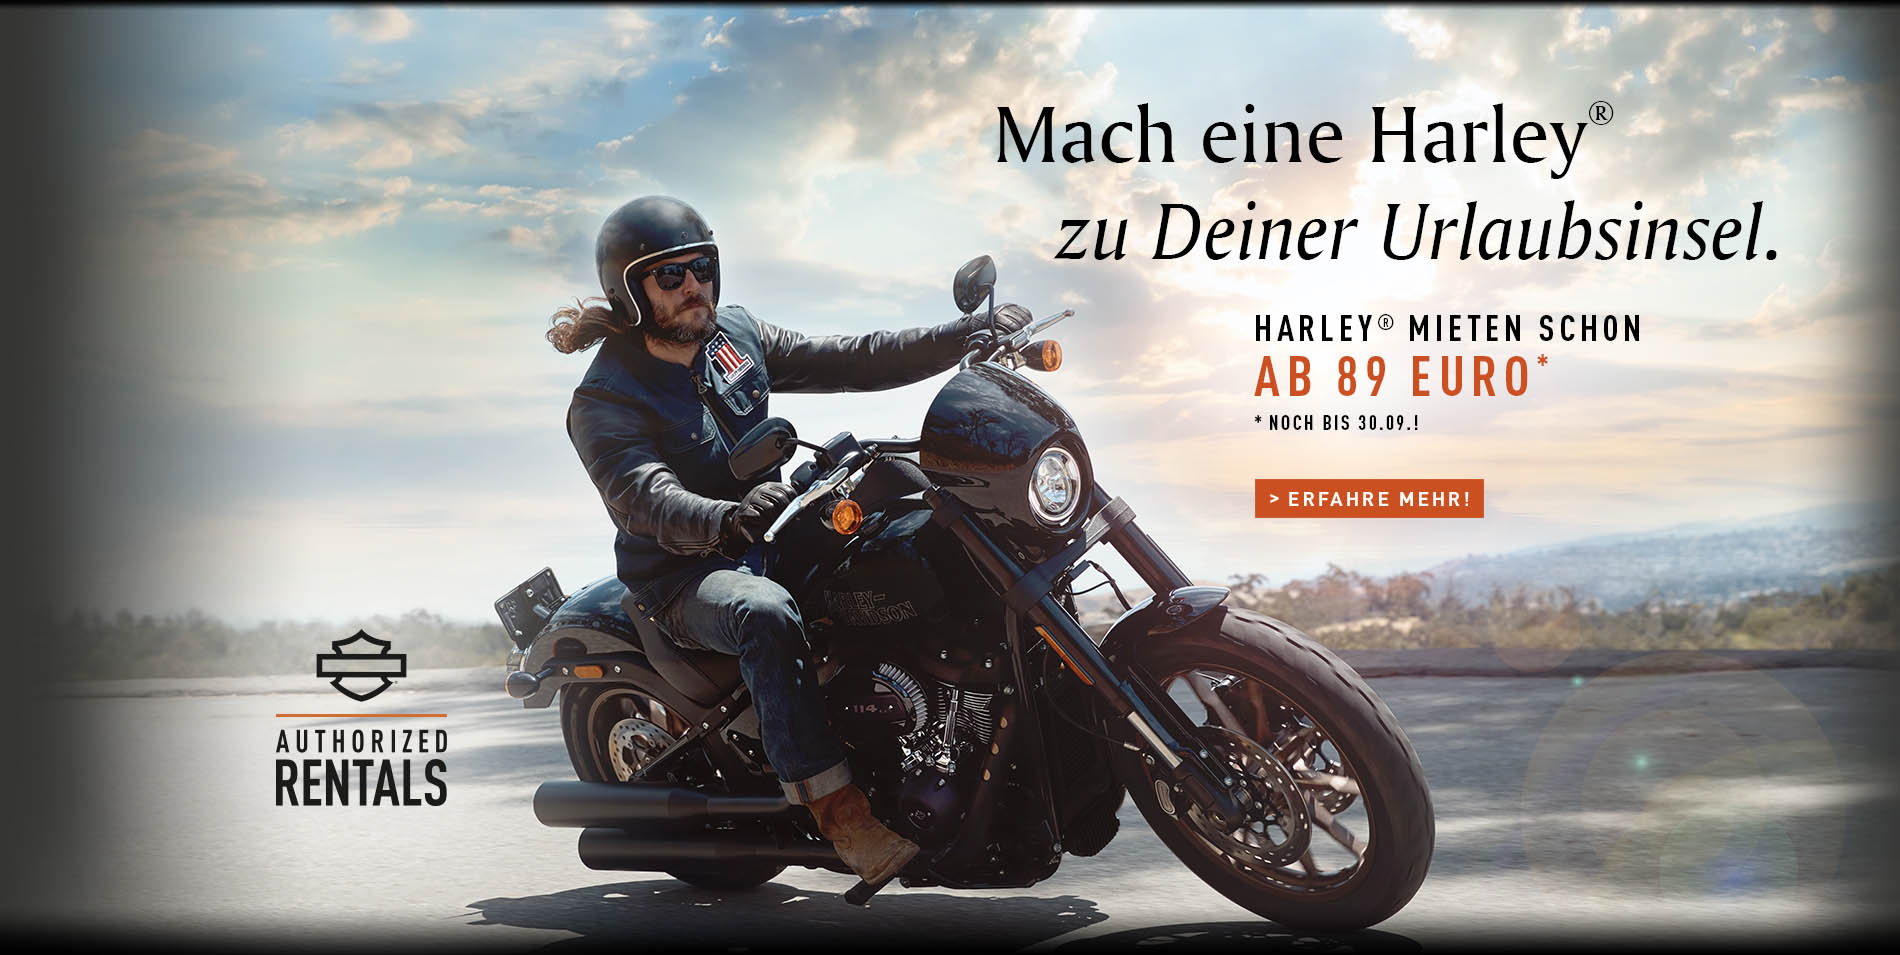 hd_kassel_website_billboard_Urlaubsinsel_1900x955